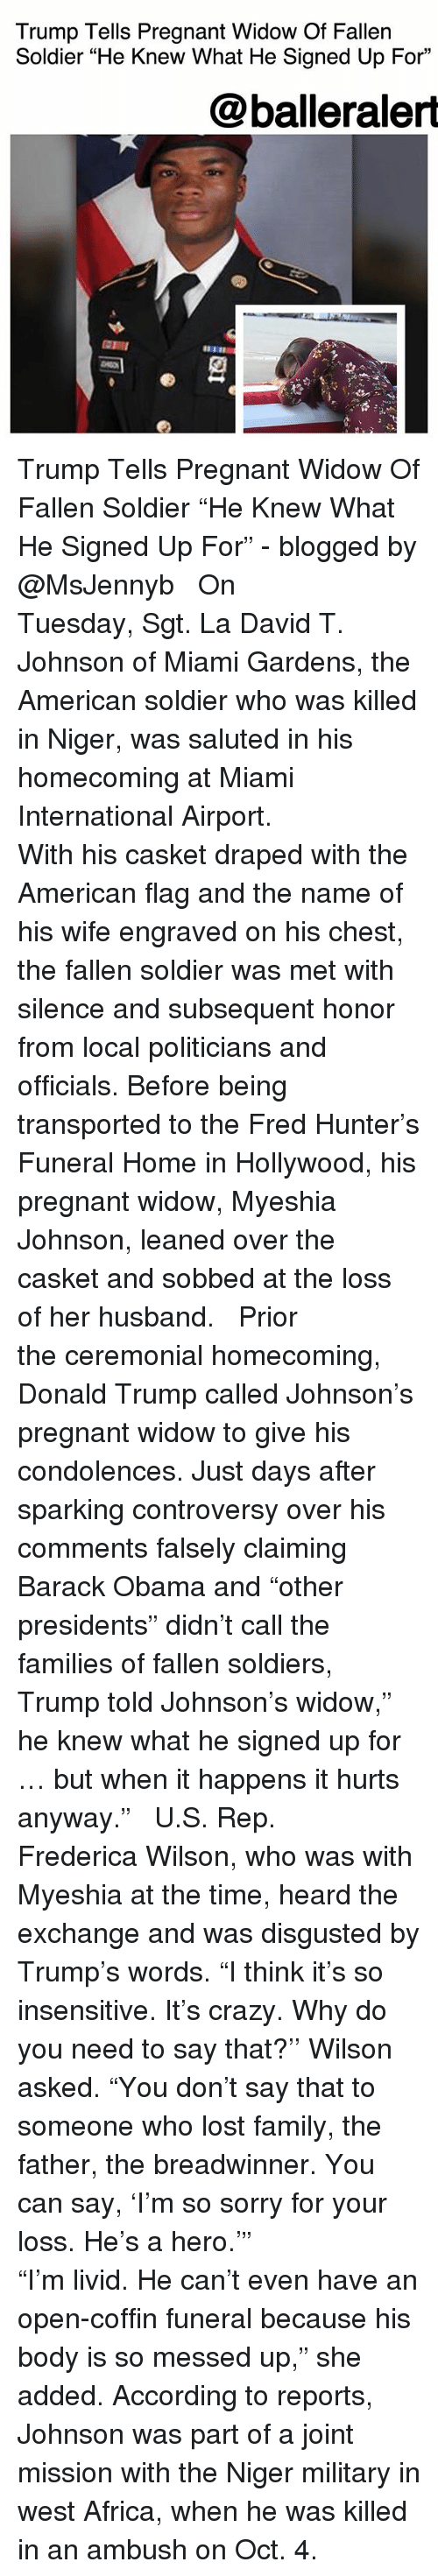 """Africa, Crazy, and Donald Trump: Trump Tells Pregnant Widow Of Fallen  Soldier """"He Knew What He Signed Up For""""  @balleraler  臣111  2 Trump Tells Pregnant Widow Of Fallen Soldier """"He Knew What He Signed Up For"""" - blogged by @MsJennyb ⠀⠀⠀⠀⠀⠀⠀ ⠀⠀⠀⠀⠀⠀⠀ On Tuesday, Sgt. La David T. Johnson of Miami Gardens, the American soldier who was killed in Niger, was saluted in his homecoming at Miami International Airport. ⠀⠀⠀⠀⠀⠀⠀ ⠀⠀⠀⠀⠀⠀⠀ With his casket draped with the American flag and the name of his wife engraved on his chest, the fallen soldier was met with silence and subsequent honor from local politicians and officials. Before being transported to the Fred Hunter's Funeral Home in Hollywood, his pregnant widow, Myeshia Johnson, leaned over the casket and sobbed at the loss of her husband. ⠀⠀⠀⠀⠀⠀⠀ ⠀⠀⠀⠀⠀⠀⠀ Prior the ceremonial homecoming, Donald Trump called Johnson's pregnant widow to give his condolences. Just days after sparking controversy over his comments falsely claiming Barack Obama and """"other presidents"""" didn't call the families of fallen soldiers, Trump told Johnson's widow,"""" he knew what he signed up for … but when it happens it hurts anyway."""" ⠀⠀⠀⠀⠀⠀⠀ ⠀⠀⠀⠀⠀⠀⠀ U.S. Rep. Frederica Wilson, who was with Myeshia at the time, heard the exchange and was disgusted by Trump's words. """"I think it's so insensitive. It's crazy. Why do you need to say that?'' Wilson asked. """"You don't say that to someone who lost family, the father, the breadwinner. You can say, 'I'm so sorry for your loss. He's a hero.'"""" ⠀⠀⠀⠀⠀⠀⠀ ⠀⠀⠀⠀⠀⠀⠀ """"I'm livid. He can't even have an open-coffin funeral because his body is so messed up,"""" she added. According to reports, Johnson was part of a joint mission with the Niger military in west Africa, when he was killed in an ambush on Oct. 4."""